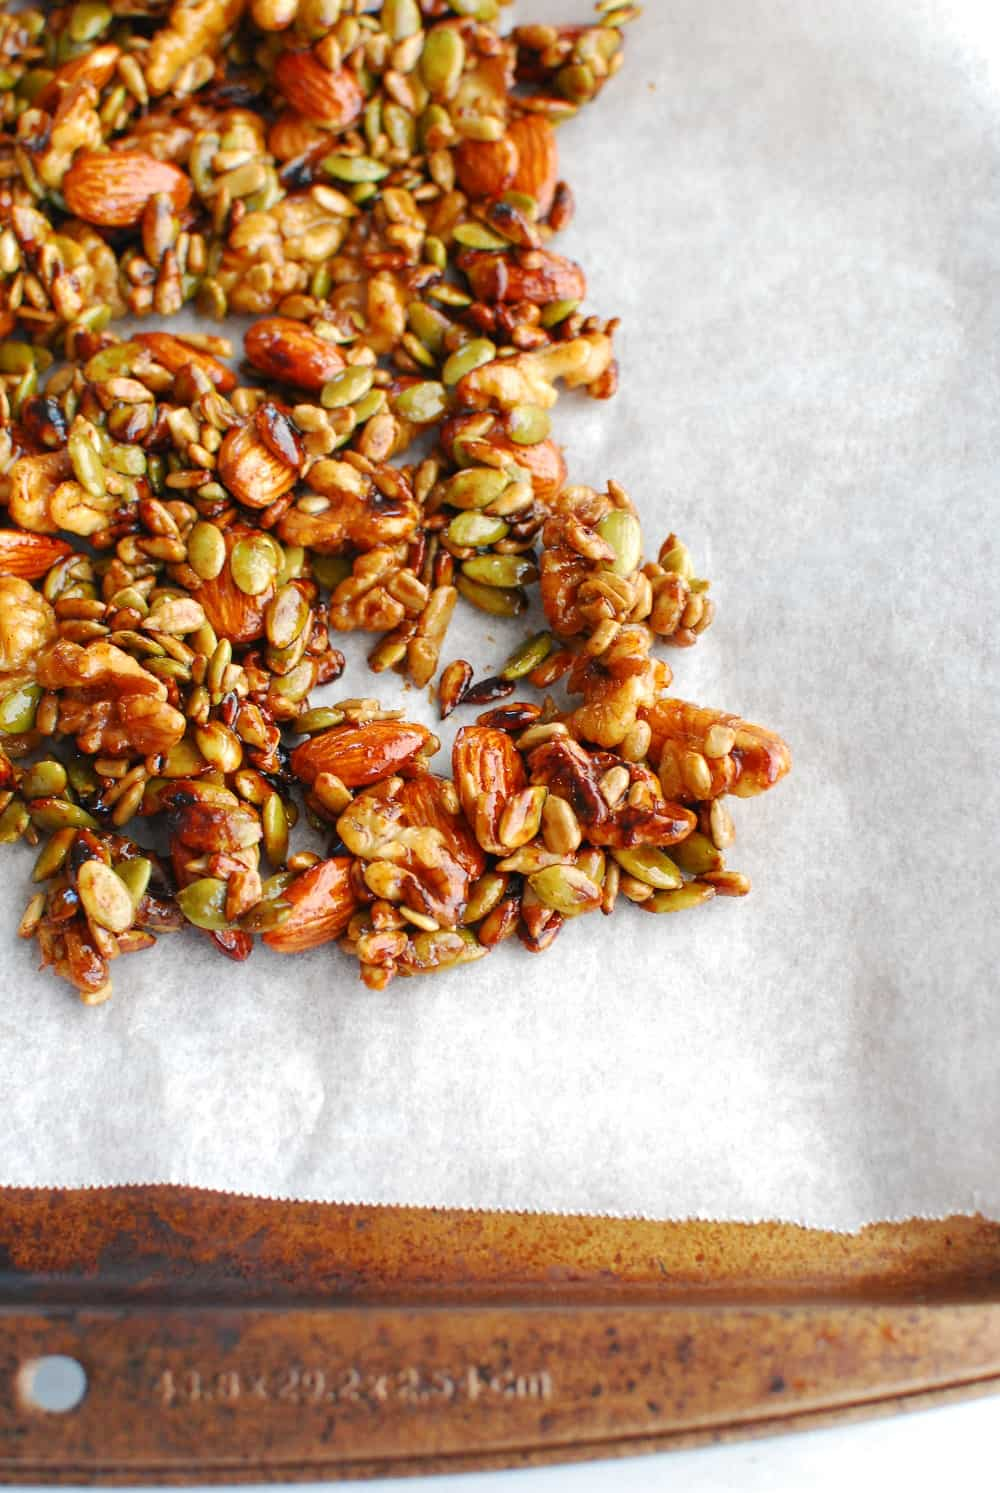 Maple glazed nuts and seeds drying on parchment paper